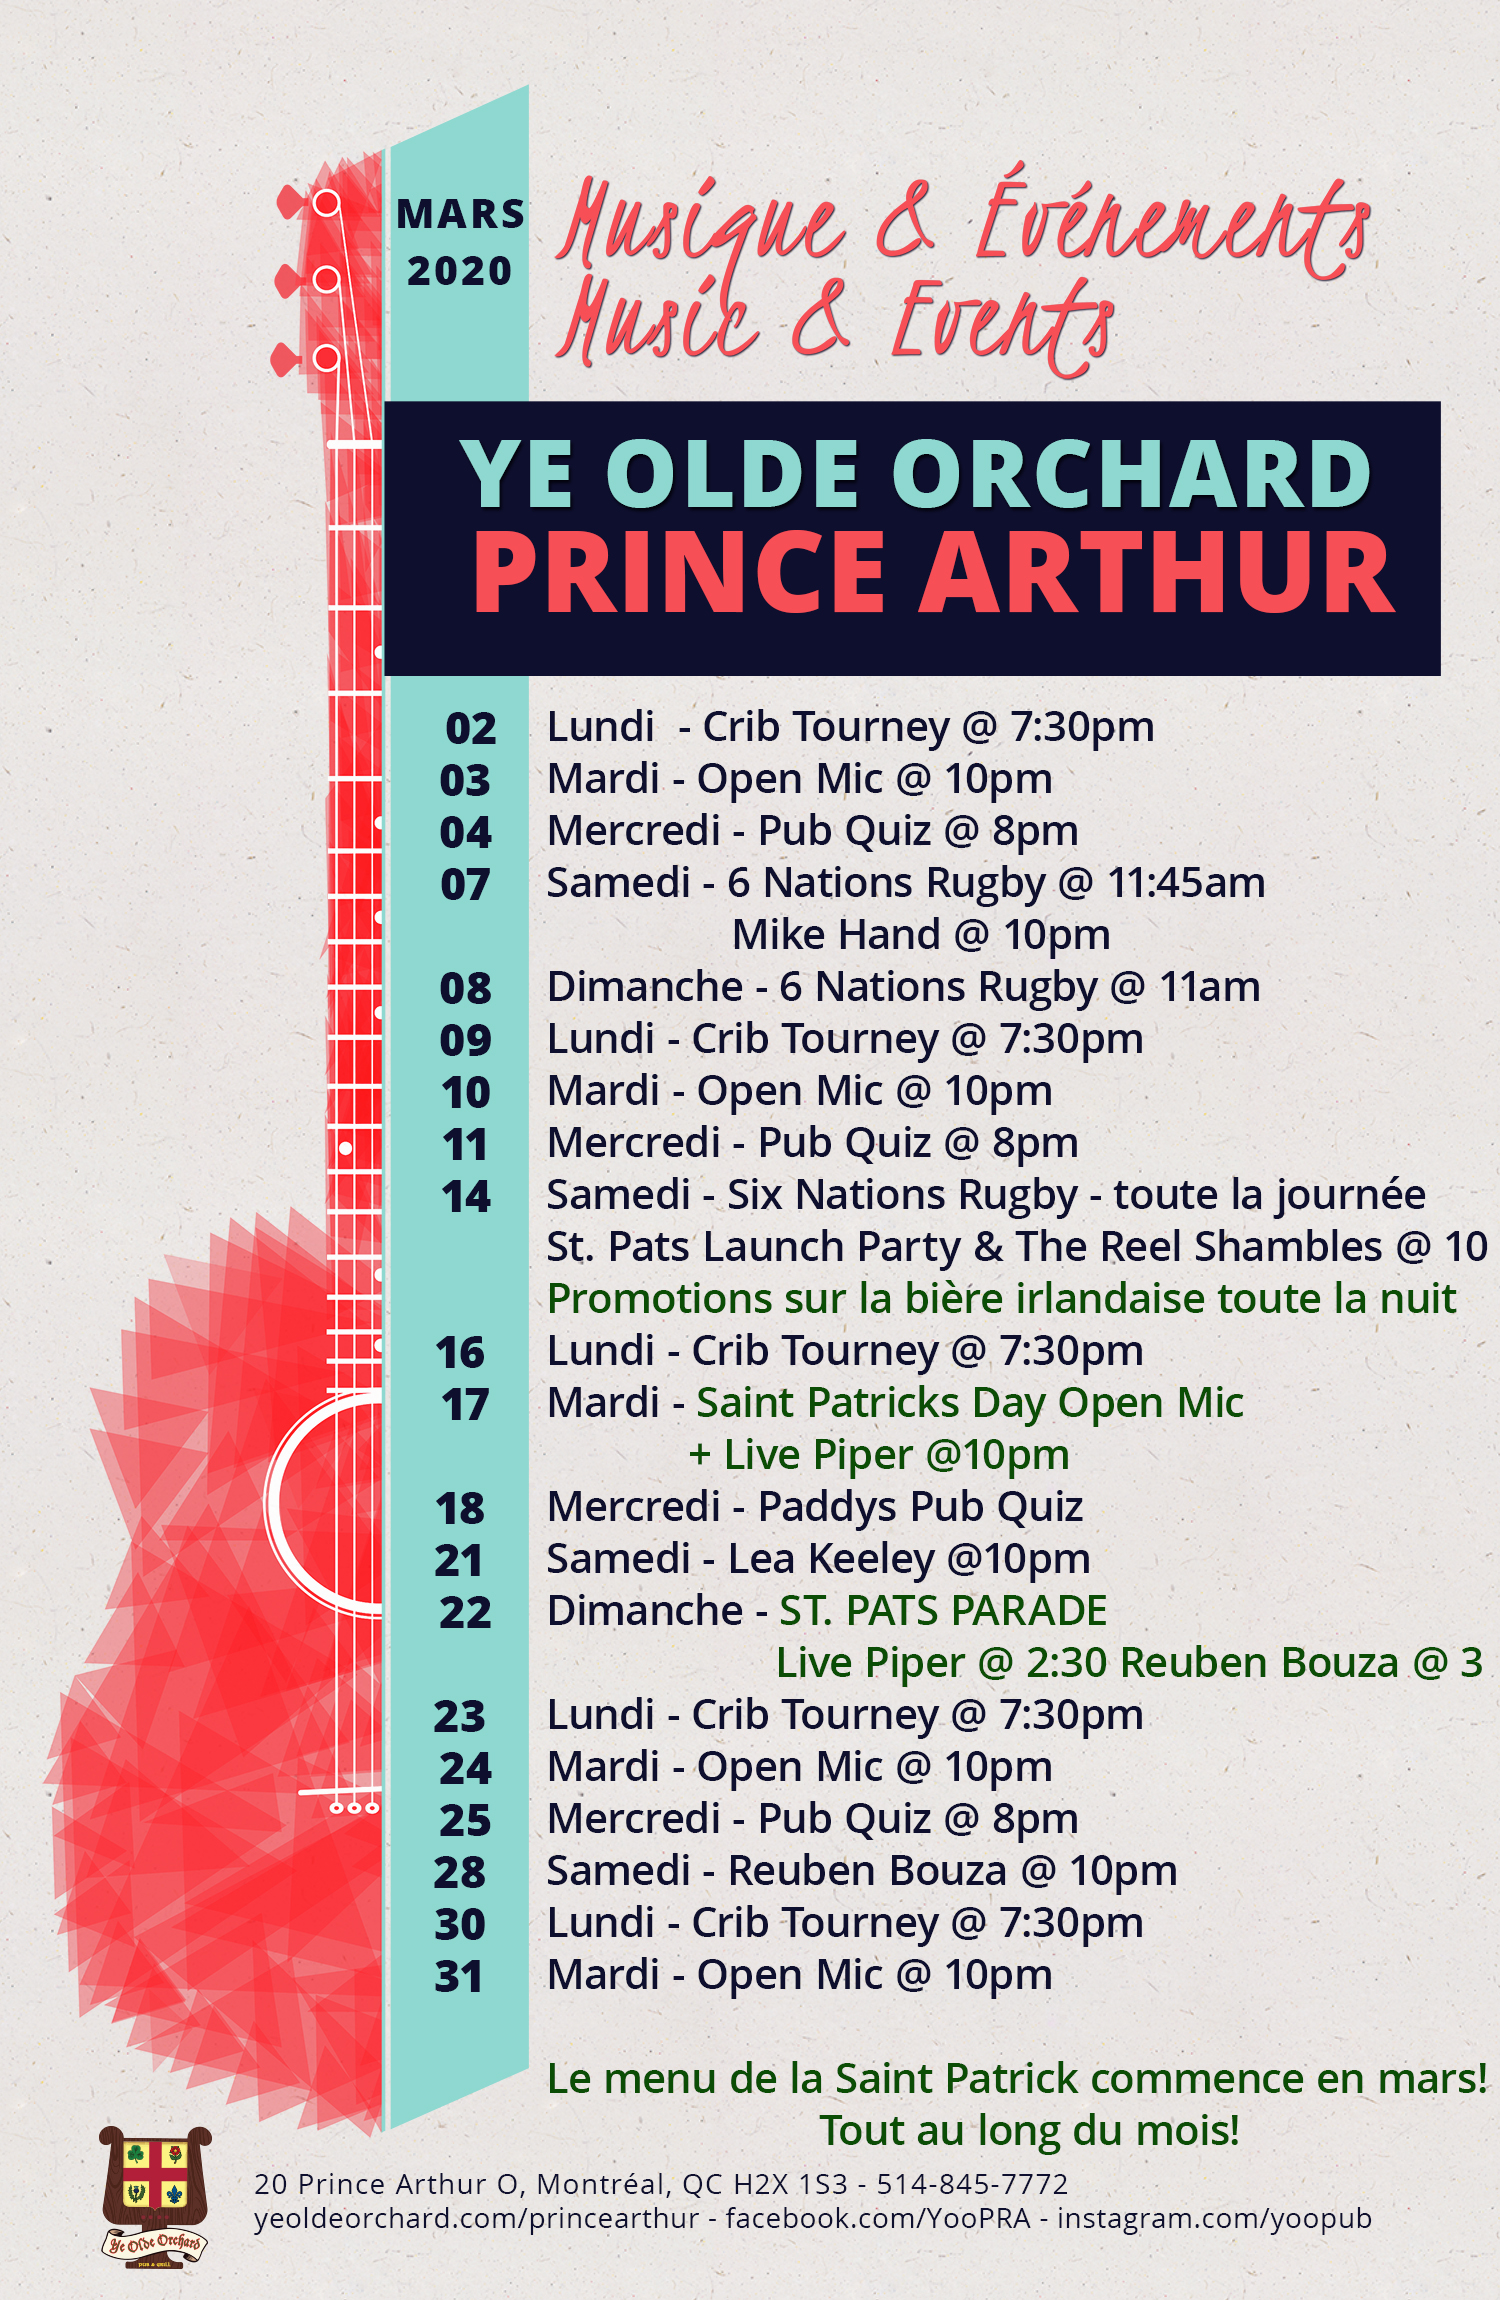 ye-olde-orchard-pub-music-and-events-calendar-prince-arthur-MAR-Web